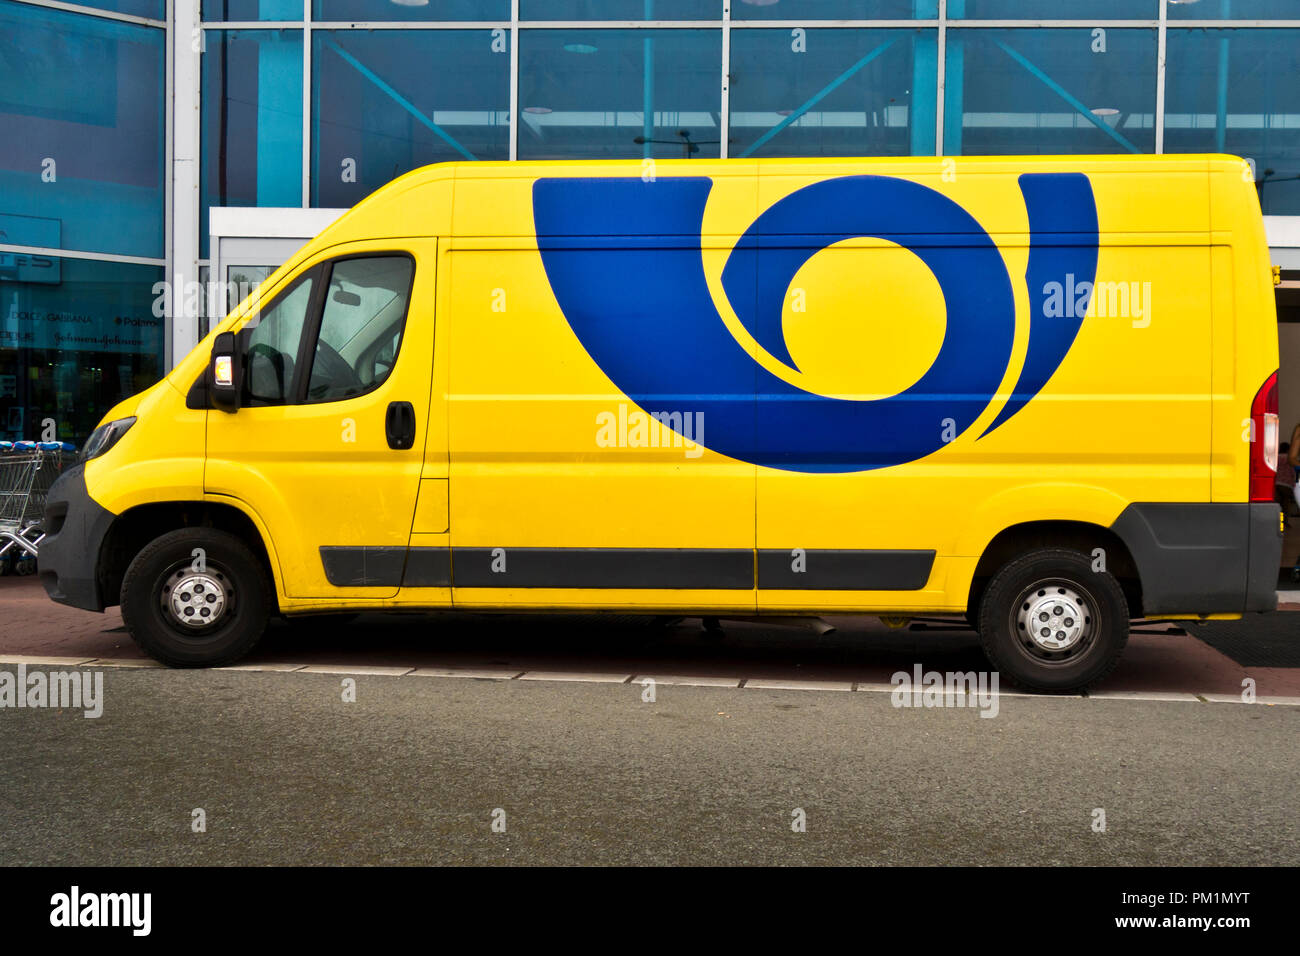 Yellow truck  of Ceska Posta for mail delivery - Stock Image